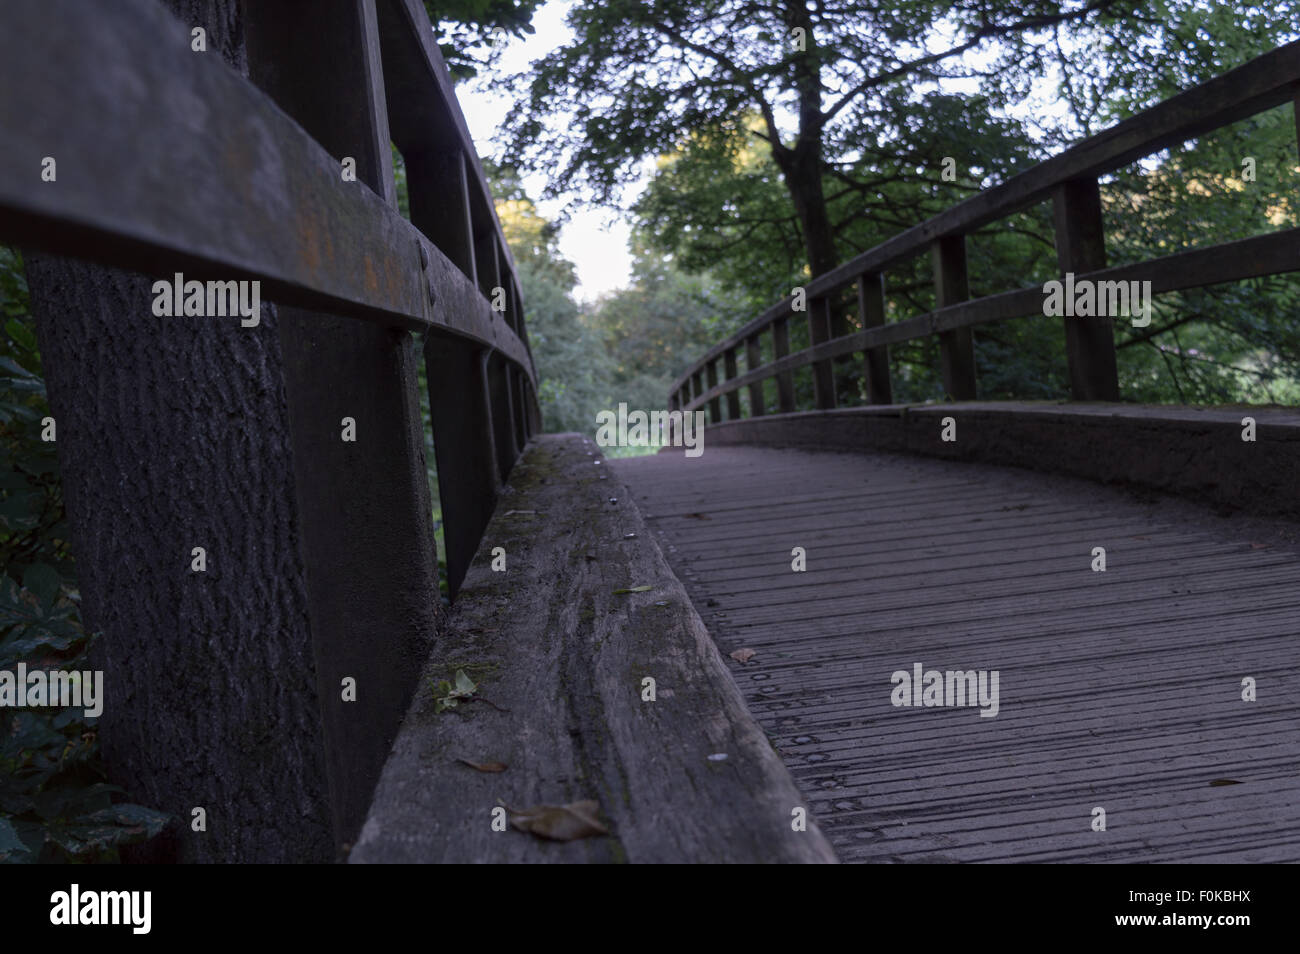 A short, wooden bridge found along the North Downs Way in Surrey, UK. Shot from a low angle. - Stock Image